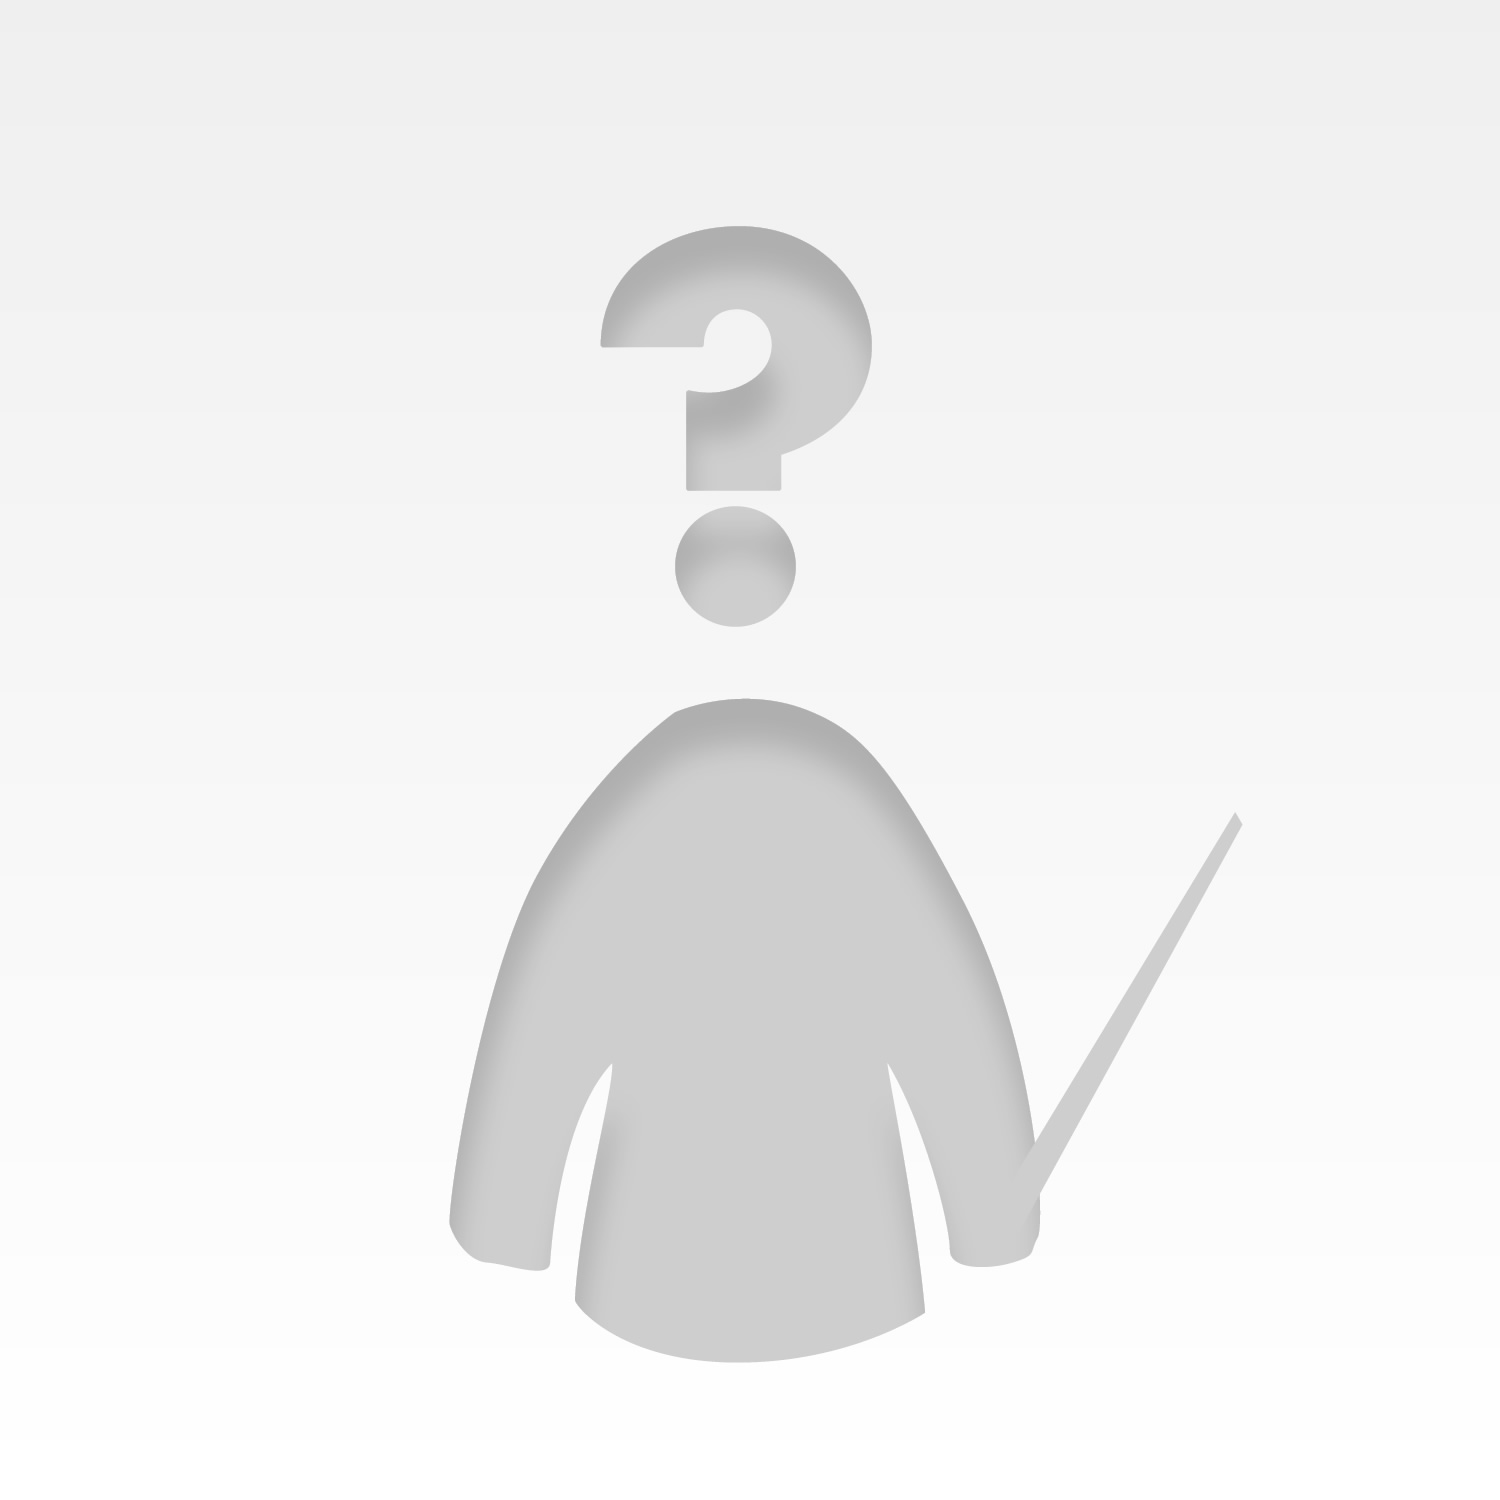 Southerncharm\'s avatar